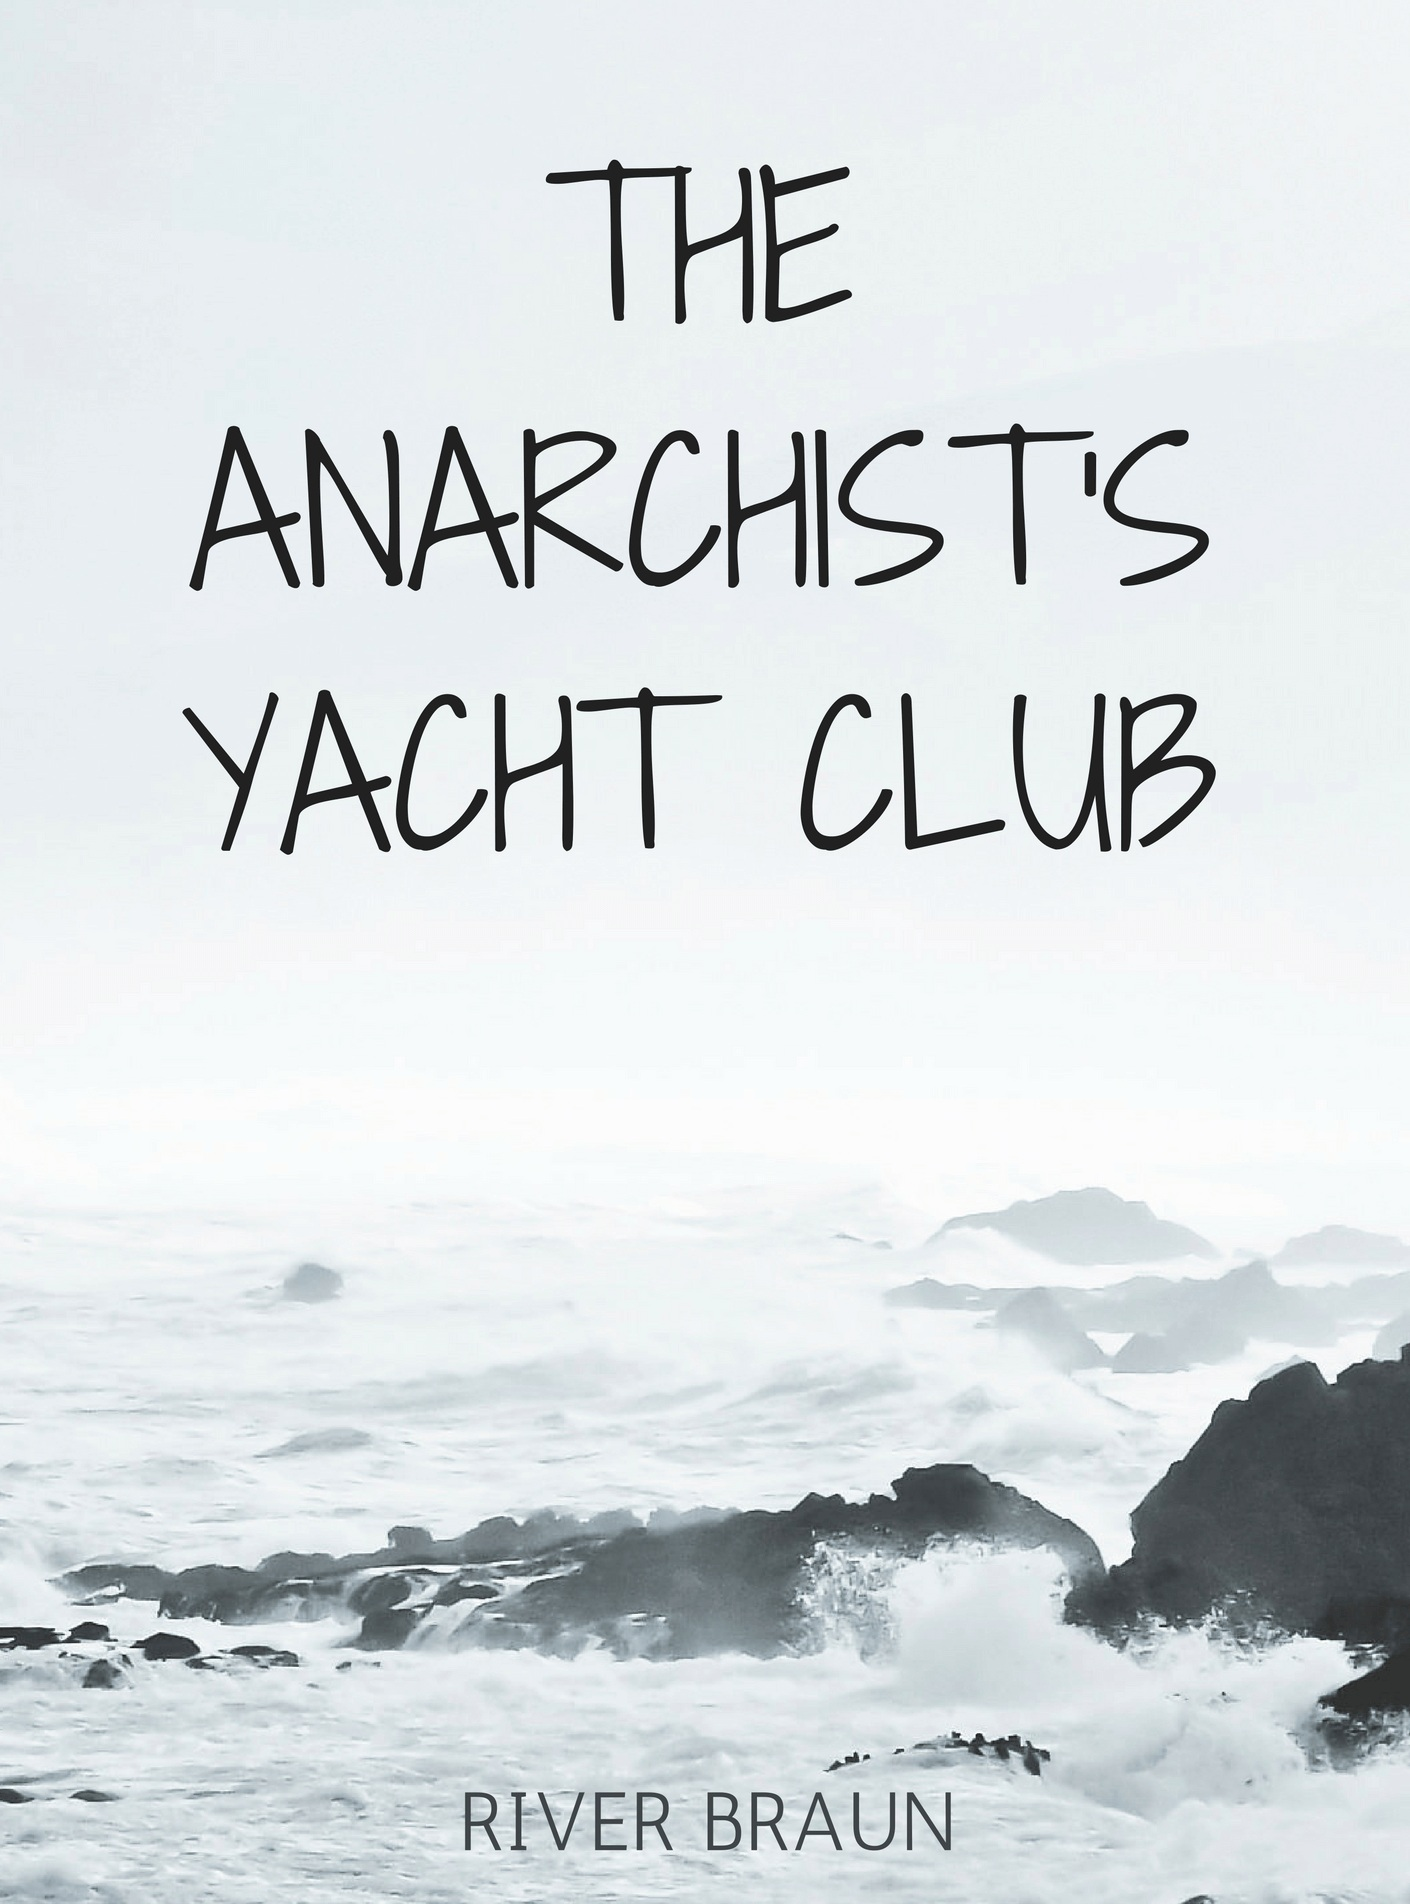 The-Anarchists-Yacht-Club-a-novel-by-river-braun.jpg